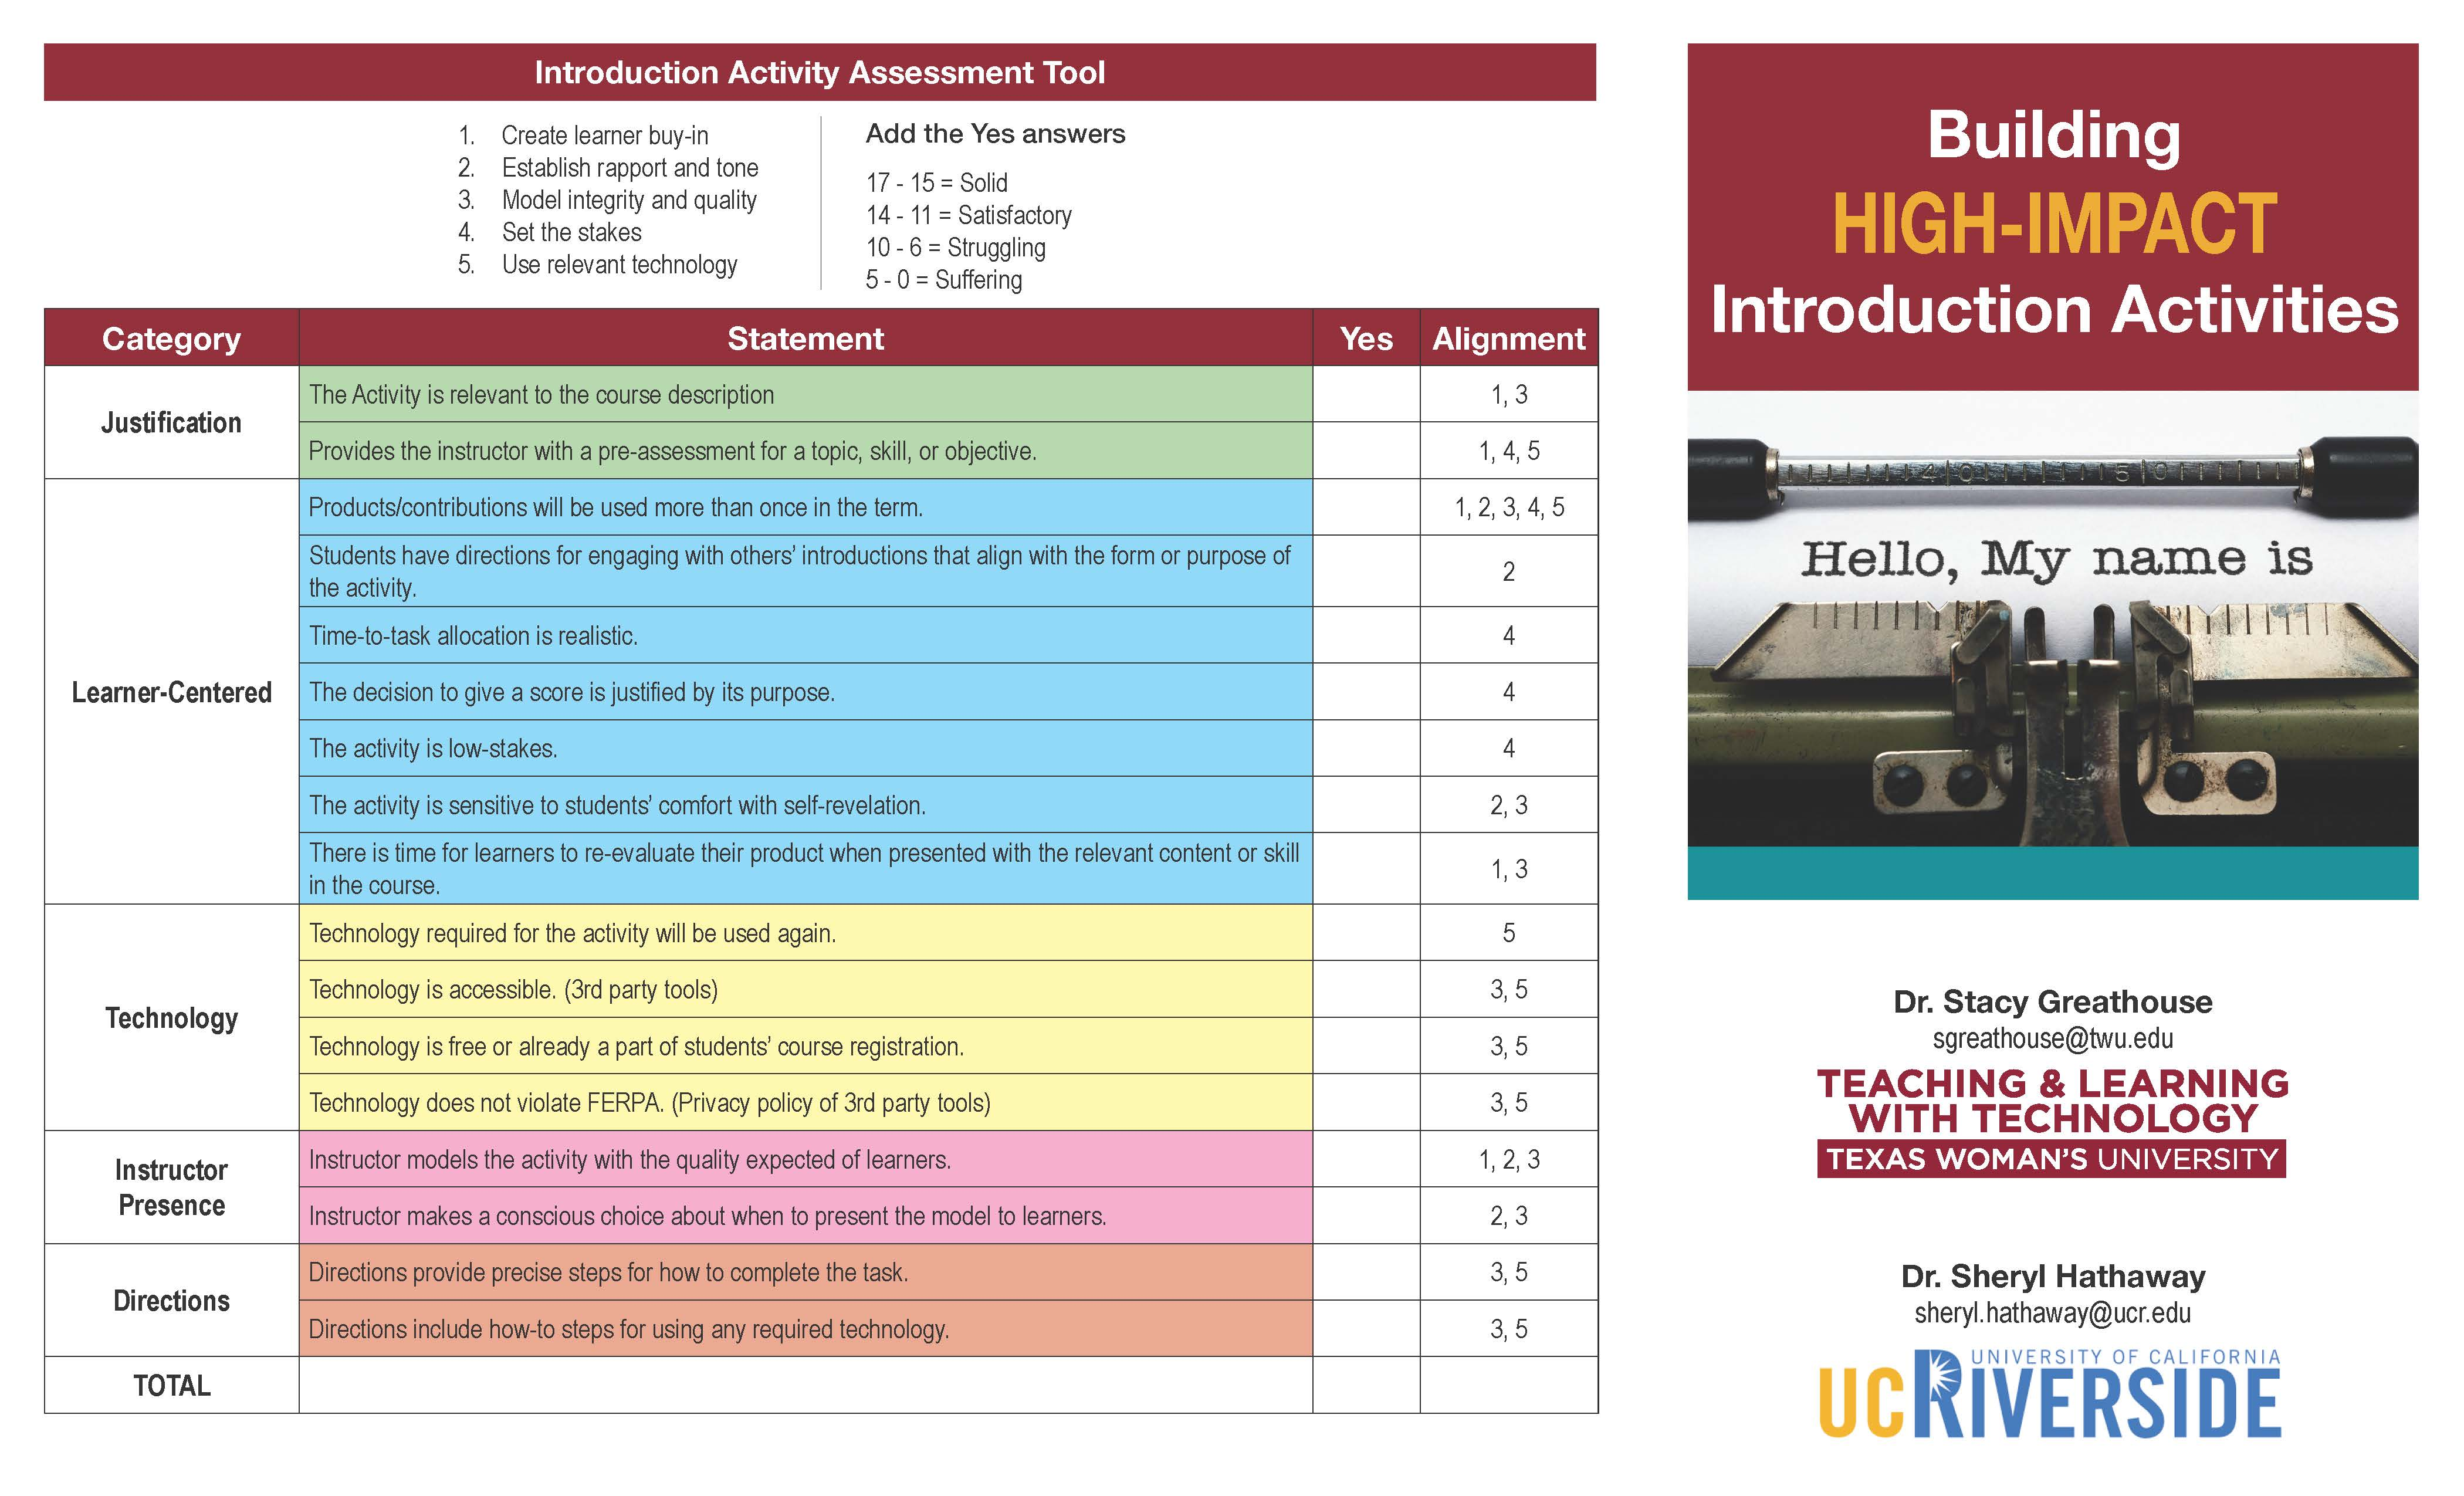 Introduction Activity Assessment tool and the title pane of the brochure.